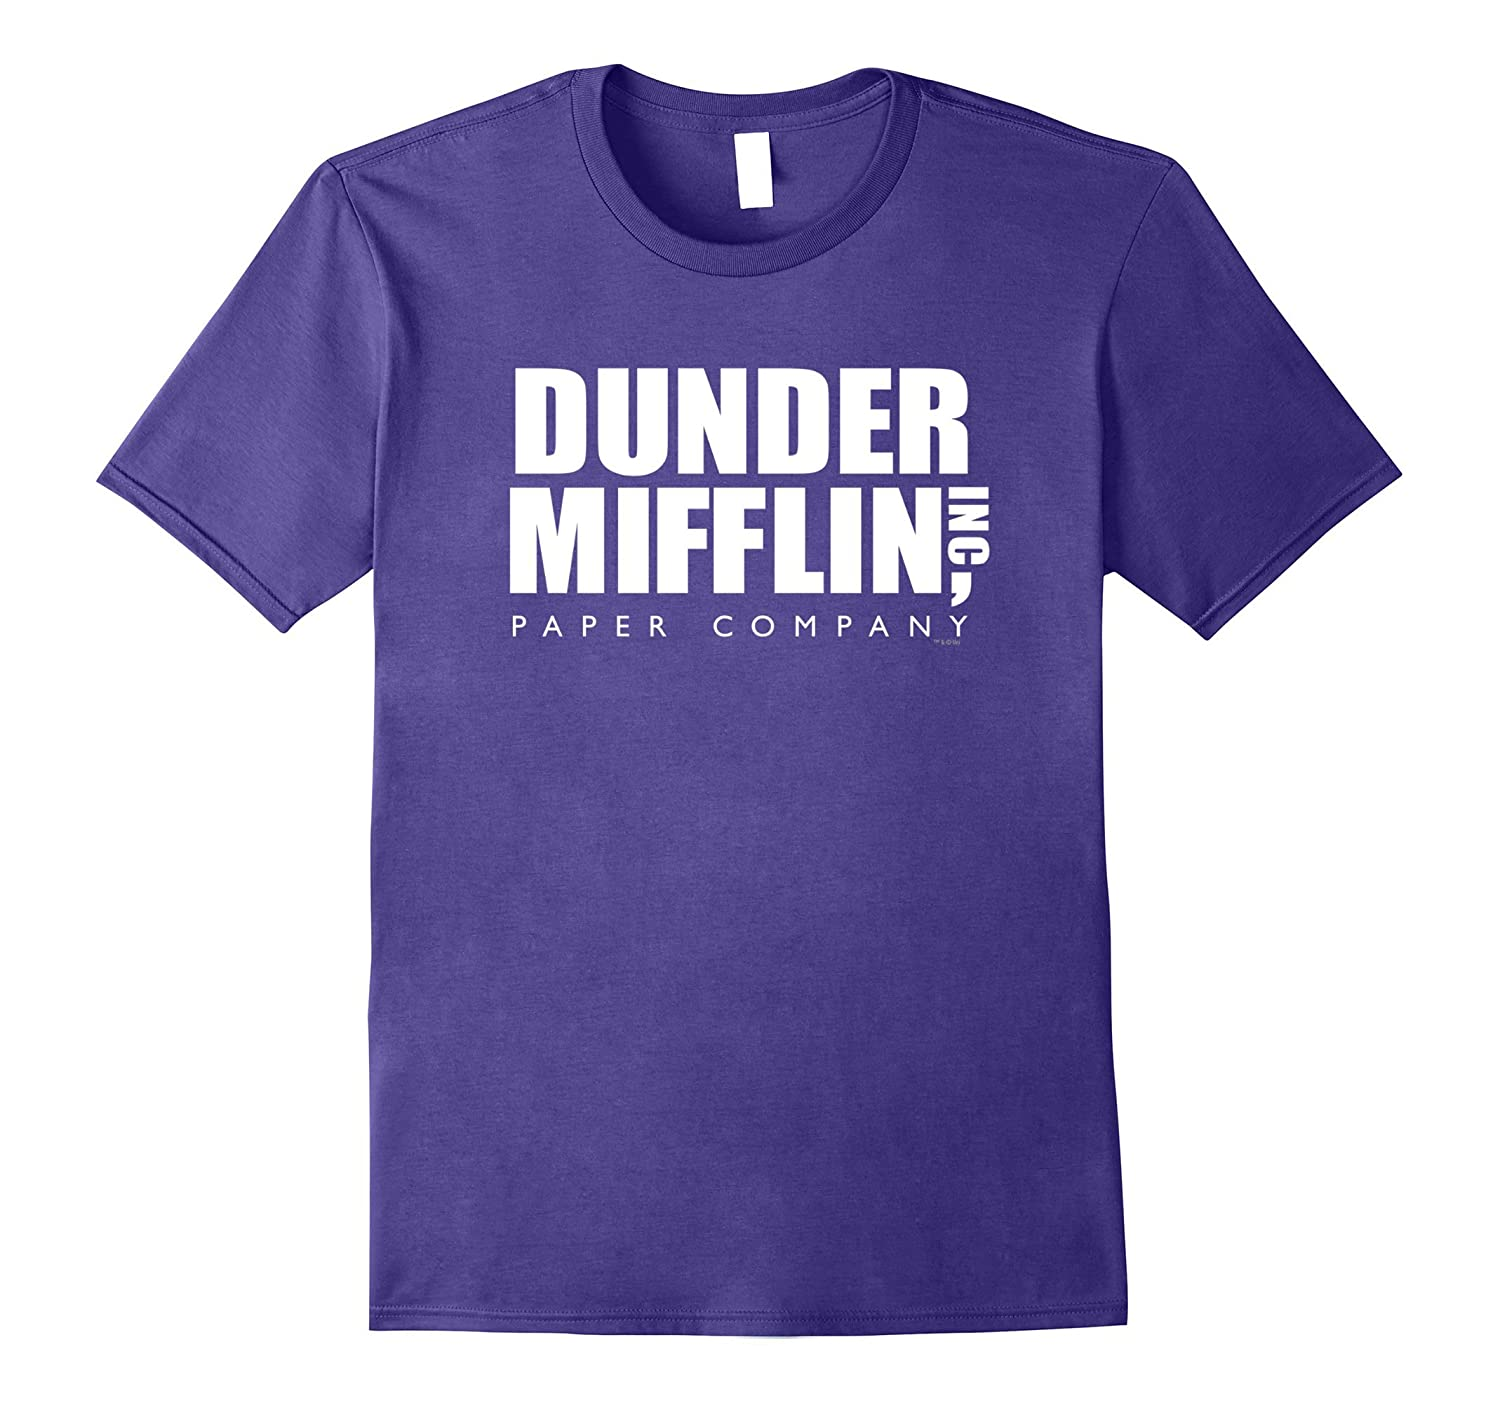 333407aaedca2 The Office Dunder Mifflin Comfortable T-Shirt - Official Tee-alottee gift -  Alottee